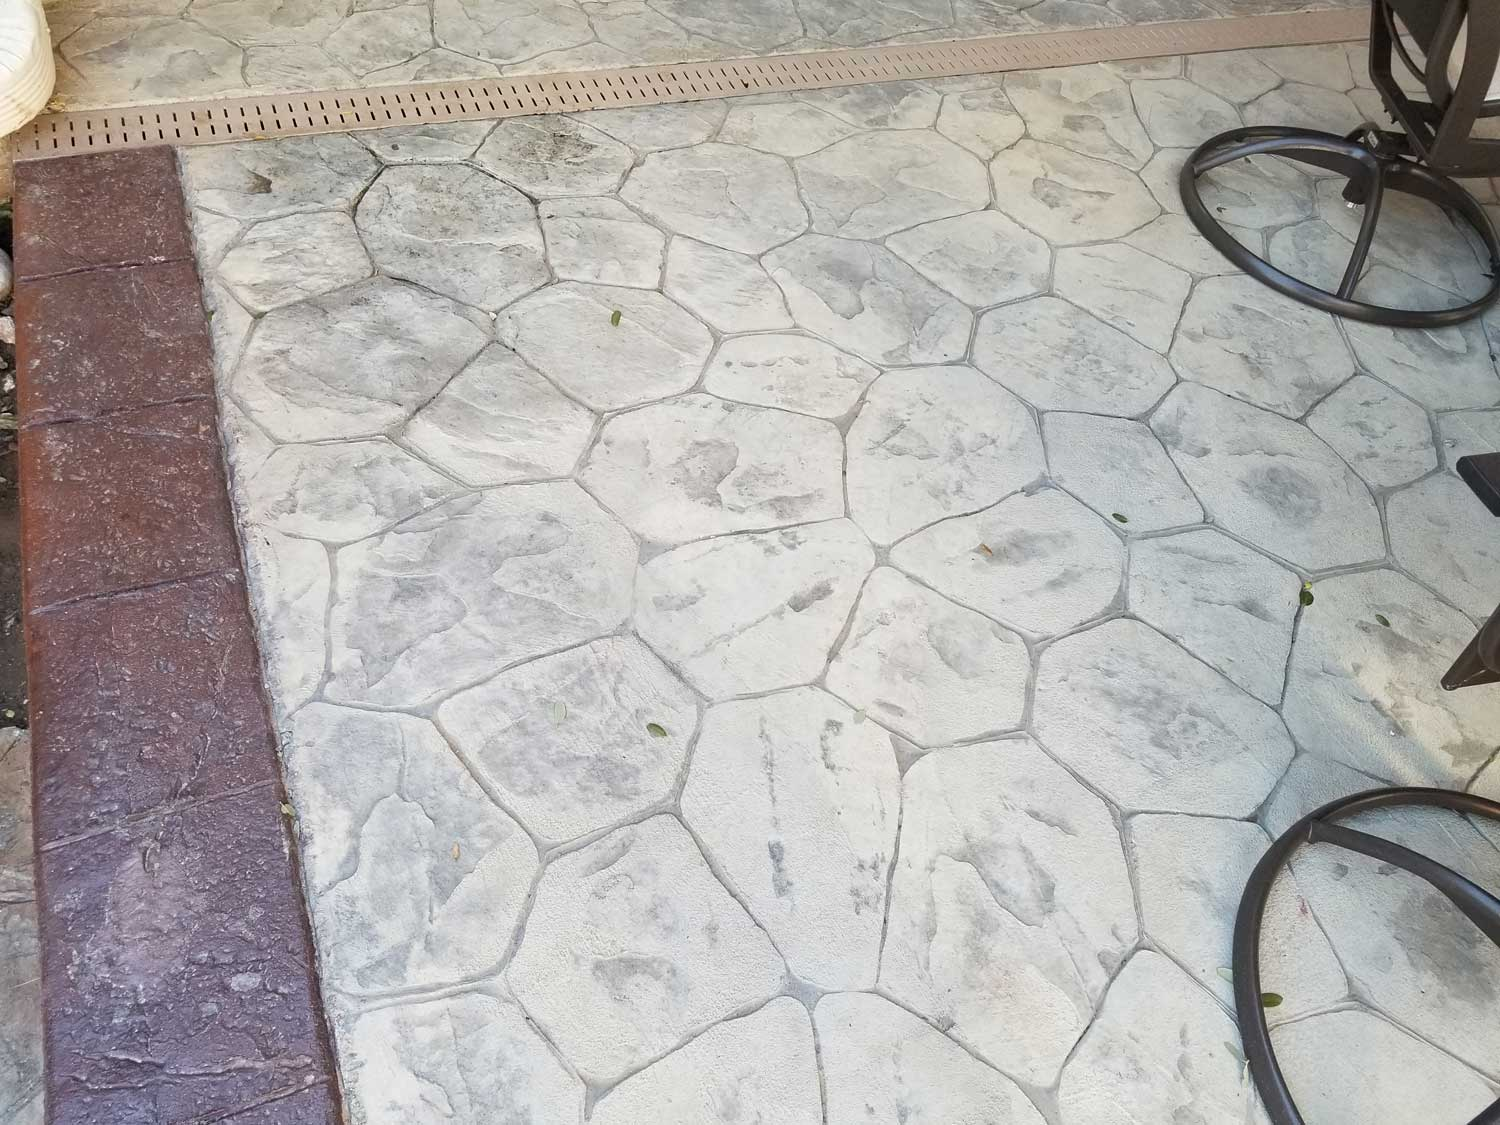 We made a back yard patio with a border. We used Random Stone Stamps with a Ash white Hardener and Sandy Buff Antique Release. For the border we used a Brick Red Hardener with brick red antique release